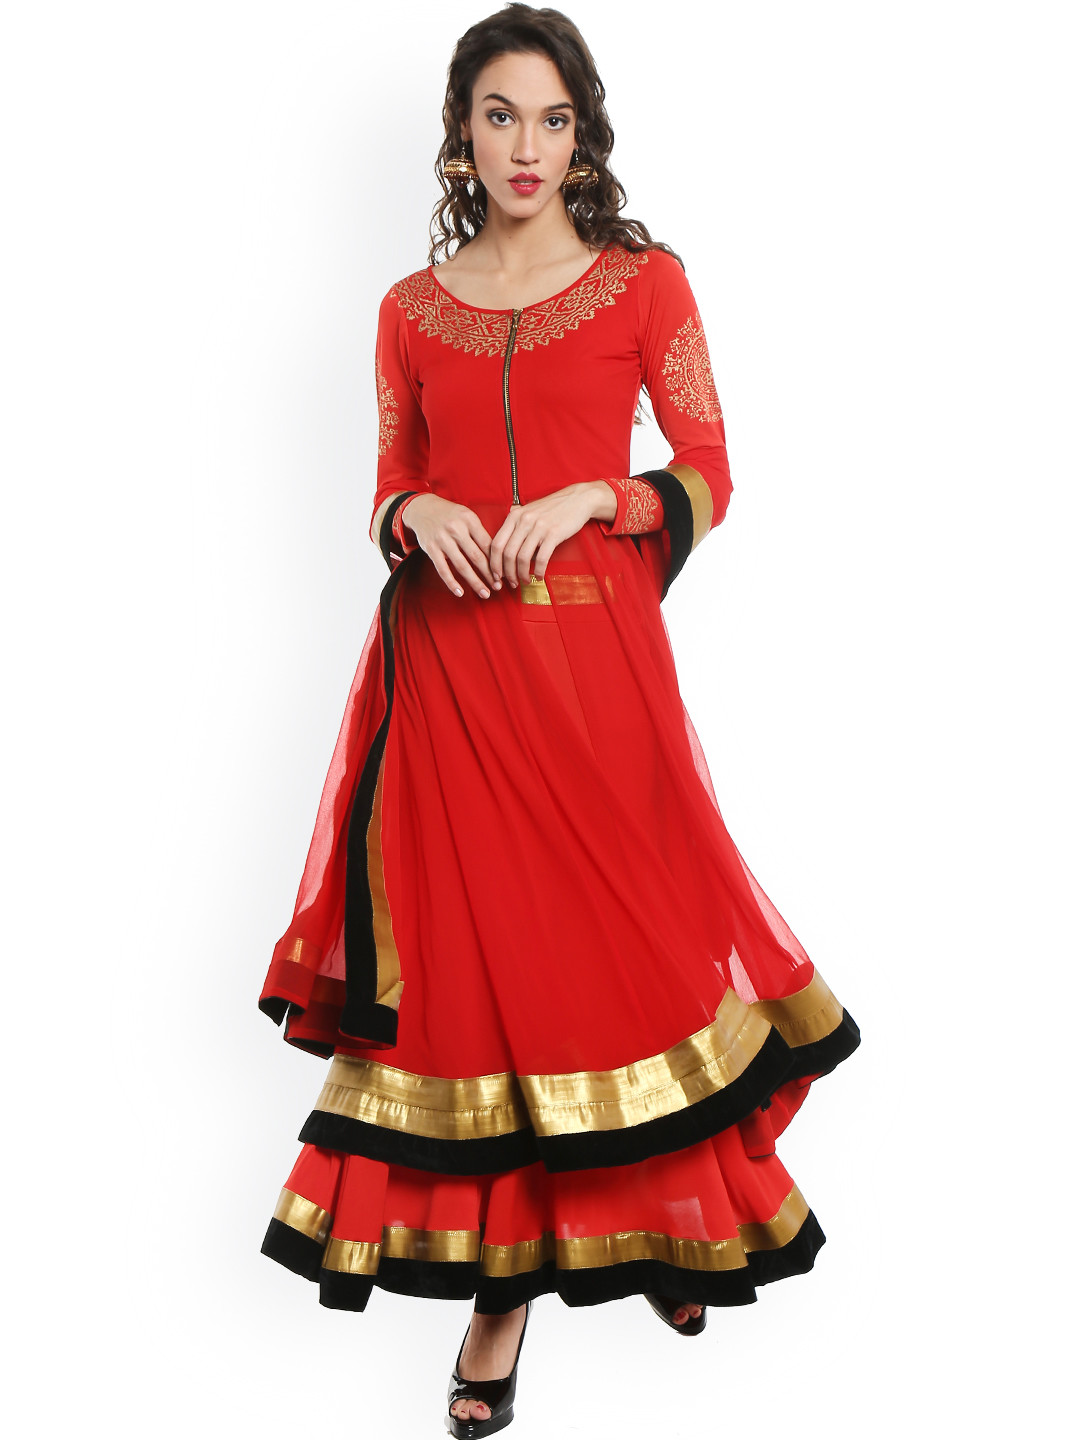 7 sangeet outfits for the bride